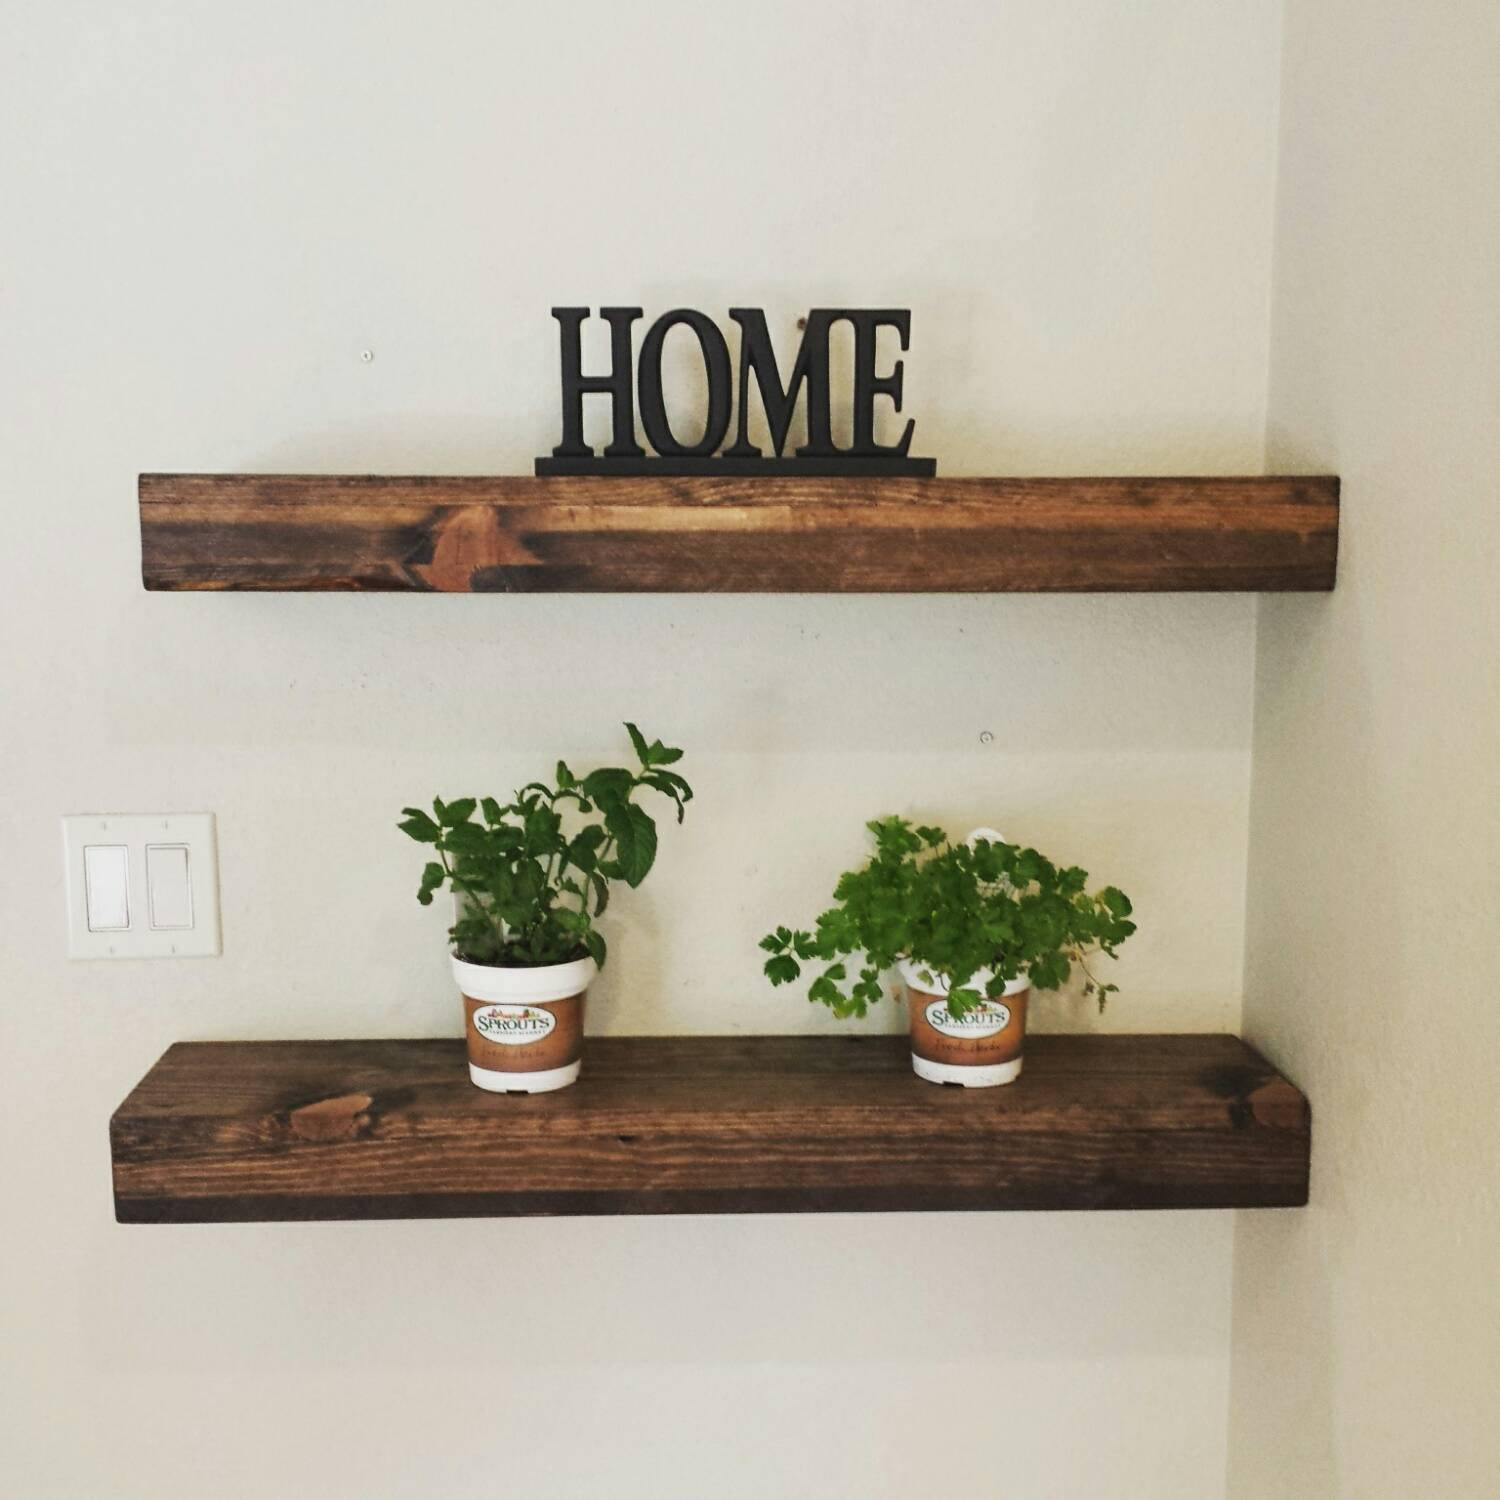 handmade rustic and reclaimed wood floating shelves mantel etsy fullxfull living room wall cubes lack tures decorated bookshelves french cleat tool holder closet storage bins